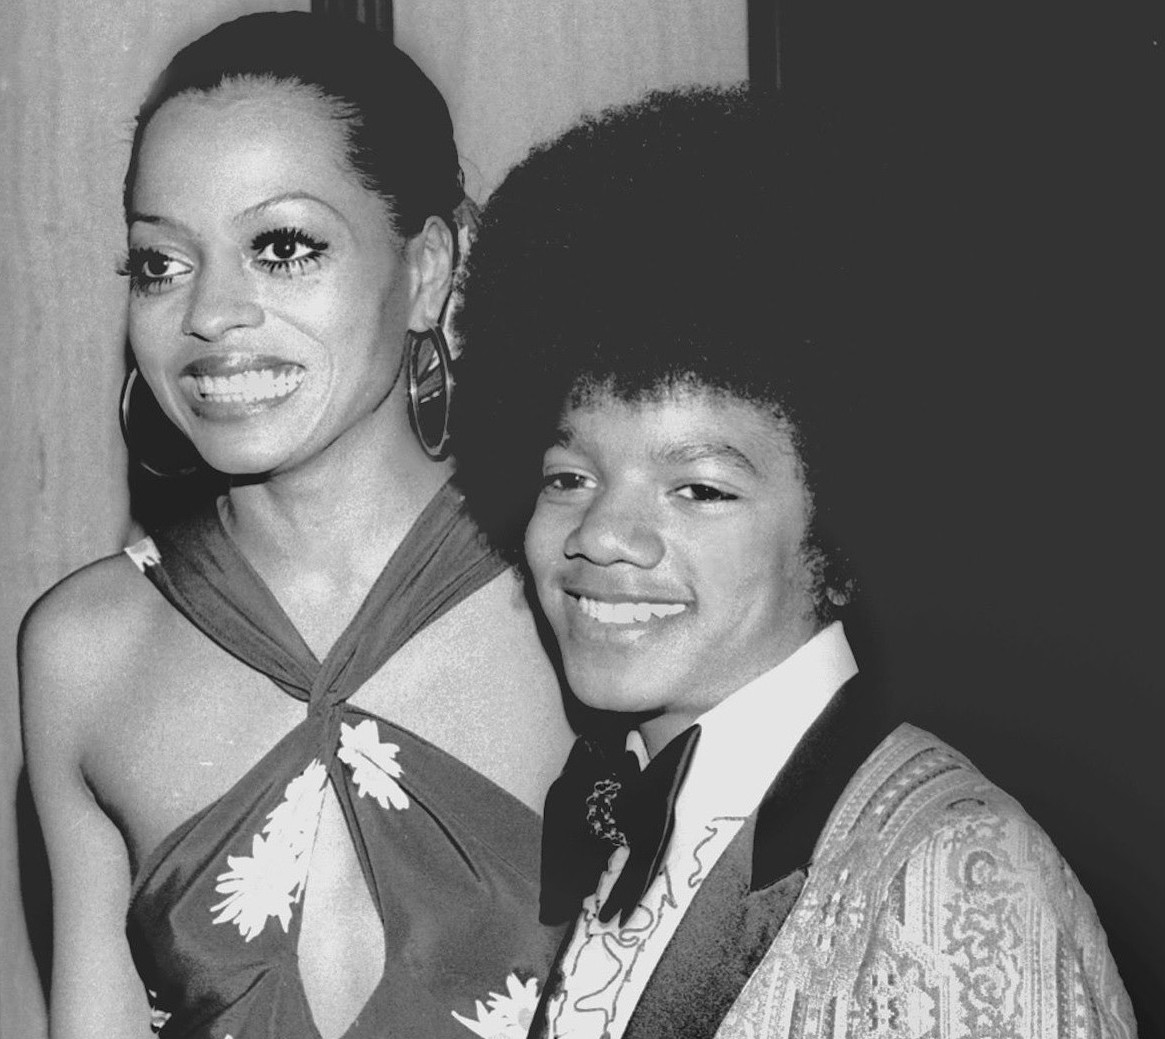 Diana Ross e Michael Jackson, due leggende della musica nera. Conosciutisi negli ambienti musicali della storica Motown, strinsero una profonda amicizia che li legò fino alla scomparsa del re del pop. Cult stories diana ross and michael jackson pop soul icon music king of pop cult stories cultstories cinema cult story cultstory art culture music ipse dixit aneddoti citazioni frasi famose aforismi immagini foto personaggi cultura musica storie facts fatti celebrità vip cult spettacoli live performance concerto photo photography celebrity giornalismo scrittura libri genio pop icon attore cantante solista pittrice scultore attrice star diva sex symbol mito michael jackson billie jean michael jackson songs michael jackson beat it michael jackson thriller michael jackson daughter michael jackson death michael jackson earth song michael jackson kids michael jackson quotes michael jackson smooth criminal michael jackson wikipedia michael jackson alive michael jackson albums michael jackson age michael jackson abc michael jackson actor michael jackson album covers michael jackson awards michael jackson as a child michael jackson all songs michael jackson and justin timberlake a michael jackson song a michael jackson tribute a michael jackson timeline a michael jackson quote a michael jackson biography a michael jackson quiz a michael jackson movie memorial a michael jackson illuminati a michael jackson facebook a michael jackson michael jackson black or white michael jackson biography michael jackson billie jean lyrics michael jackson birthday michael jackson ben michael jackson beat it lyrics michael jackson blanket michael jackson butterflies b michael jackson /b michael b jackson actor michael b jackson md michael b jackson md hoboken michael b jackson photography michael b jackson imdb michael b jackson author b howard michael jackson son b howard michael jackson lil b michael jackson michael jackson children michael jackson cirque du soleil michael jackson costume michael jackson childhood michael jackson concert michael jackson come together michael jackson cartoon michael jackson chicago michael jackson change michael jackson captain eo michael c jackson systems thinking michael c jackson systems michael c jackson hull c'mon michael jackson c michael williams jacksonville fl c.ronaldo michael jackson pimp c michael jackson c michael moore jackson ohio a b c michael jackson og ron c michael jackson michael jackson çocuğu michael jackson çello michael jackson çeviri michael jackson çizgi film michael jackson çocuğu var mı michael jackson çevirileri michael jackson çello smooth criminal michael jackson çarşı pankartı michael jackson dangerous çeviri michael jackson ç michael jackson discography michael jackson dance michael jackson dance video michael jackson dead michael jackson death date michael jackson dance video free download michael jackson documentary michael jackson dad d s michael jackson de michael jackson de michael jackson thriller de michael jackson billie jean de michael jackson canciones de michael jackson fantasma de michael jackson ghost de michael jackson beat it de michael jackson musica de michael jackson wikipedia michael jackson earth song lyrics michael jackson eating popcorn michael jackson estate michael jackson eating popcorn gif michael jackson experience michael jackson earth song mp3 michael jackson estate net worth michael jackson eddie murphy michael jackson evolution michael e jackson md michael e jackson dermatologist vdekja e michael jackson hija e michael jackson jeta e michael jackson kenget e michael jackson akon e michael jackson olodum e michael jackson beyonce e michael jackson prince e michael jackson michael jackson është gjallë michael jackson funeral michael jackson family michael jackson free willy michael jackson facts michael jackson father michael jackson film michael jackson funny michael jackson first song michael jackson first moonwalk michael jackson fancy dress michael f jackson aci worldwide f action michael jackson dr michael f jackson michael jackson ghost michael jackson greatest hits michael jackson glove michael jackson grave michael jackson gif michael jackson games michael jackson girlfriend michael jackson got to be there michael jackson grammys michael jackson guitarist g dragon michael jackson billie g michael jackson kenny g michael jackson billie g michael jackson lyrics g live michael jackson john g michael jackson michael g pond jackson ms g dragon vs michael jackson adam g sevani michael jackson adam g sevani michael jackson tribute michael jackson hologram michael jackson height michael jackson house michael jackson human nature michael jackson heal the world michael jackson history michael jackson hits michael jackson heal the world lyrics michael jackson hat michael jackson halloween costume michael h jackson michael h jackson galapagos a natural history h&m michael jackson s h figuarts michael jackson h&m michael jackson beat it h&m koszulka michael jackson h&m maglia michael jackson michael jackson ch michael jackson in the closet michael jackson images michael jackson interview michael jackson invincible michael jackson in india michael jackson i'll be there michael jackson i want you back michael jackson is alive michael jackson is still alive michael jackson imdb i michael jackson bad is michael jackson a ghost is michael jackson buried is michael jackson in the simpsons michael jackson junior michael jackson jam michael jackson jacket michael jackson jr michael jackson justin timberlake michael jackson jackson 5 michael jackson just beat it michael jackson just dance michael jackson junior age michael jackson jam lyrics j michael jackson designs michael j jackson brookside michael j jackson brookside ollie simpson michael j jackson imdb michael j jackson autonation michael j jackson photography michael j. jackson richmond va michael j jackson facebook michael j jackson photos michael j jackson married michael jackson kids names michael jackson king of pop michael jackson killer michael jackson karaoke michael jackson keep the faith michael jackson king michael jackson kids net worth michael jackson kid costumes michael jackson kick slim k michael jackson michael jackson kpop barry k. rothman michael jackson j k rowling michael jackson john k isaac michael jackson k boing michael jackson por k murio michael jackson sera k michael jackson morreu daddy k remix michael jackson daddy k mix michael jackson michael jackson lyrics michael jackson leave me alone michael jackson las vegas michael jackson live michael jackson love songs michael jackson last song michael jackson last album michael jackson look alike michael jackson lady in my life michael jackson logo michael l jackson chicago michael l jackson usc michael l jackson wiki michael l jackson obituary michael l jackson indianapolis michael l jackson seattle michael l jackson soundboard michael l jackson jr michael l jackson missouri l michael maddox jacksonville michael jackson 0 to 100 michael jackson 02 michael jackson 02 tickets michael jackson one michael jackson 02 tour michael jackson 03 april 1983 michael jackson 02 tickets ebay michael jackson off the wall michael jackson 02 concert dates michael jackson 02 2012 michael jackson 0 gravedad 0 michael jackson france 0 michael jackson truco gravedad 0 michael jackson michael jackson 1980 michael jackson 1984 michael jackson 1985 michael jackson 1983 michael jackson 1987 michael jackson 1990 michael jackson 1995 michael jackson 1988 michael jackson 1989 michael jackson 1991 #1 michael jackson songs #1 michael jackson song of all time number 1 michael jackson song 1 album michael jackson radio 1 michael jackson mix spice 1 michael jackson sims 1 michael jackson top 1 michael jackson songs clyde 1 michael jackson ghost video 1 2 3 michael jackson michael jackson 2009 michael jackson 2015 michael jackson 2000 michael jackson 2008 michael jackson 2001 michael jackson 2000 watts michael jackson 2 bad michael jackson 2007 michael jackson 2002 michael jackson 2006 michael jackson 2bad 2 bad michael jackson lyrics mib 2 michael jackson 2 bad michael jackson mp3 2cellos michael jackson history 2 michael jackson sims 2 michael jackson 2 bad michael jackson mp3 download 2 bad michael jackson download 2 chainz michael jackson michael jackson 30th anniversary michael jackson 30th anniversary celebration michael jackson 3t michael jackson 30 michael jackson 3d michael jackson 3gp video michael jackson 3d movie michael jackson 30 years old michael jackson 30th anniversary dvd michael jackson 30 anniversary dvd 3 michael jackson songs sonic 3 michael jackson sims 3 michael jackson playstation 3 michael jackson the experience sonic 3 michael jackson comparison michael jackson mp3 playstation 3 michael jackson sonic 3 michael jackson music sonic 3 michael jackson confirmed sonic 3 michael jackson songs michael jackson 45 michael jackson 45 records michael jackson 45 degrees michael jackson 4k michael jackson 4sh michael jackson 4 years to get it right michael jackson 40th anniversary concert michael jackson 40 years old michael jackson 45th birthday party michael jackson 40th anniversary channel 4 michael jackson documentary iphone 4 michael jackson case just dance 4 michael jackson scary movie 4 michael jackson michael jackson 50 michael jackson 5 years old michael jackson 50 years old michael jackson 5 songs michael jackson 5 abc michael jackson 50th birthday michael jackson 57th birthday michael jackson 5 chart topping singles michael jackson 50 of sony michael jackson 56th birthday 5 michael jackson songs top 5 michael jackson songs channel 5 michael jackson gta 5 michael jackson maroon 5 michael jackson iphone 5 michael jackson case jackson 5 michael jackson age top 5 michael jackson albums top 5 michael jackson songs of all time john 5 michael jackson michael jackson 60 minutes michael jackson 60s michael jackson 6 rings jordans michael jackson 60 minutes interview transcript michael jackson 6th album michael jackson 6 years old michael jackson 60 minutes interview full michael jackson 60 minutes 2013 michael jackson 6 rings michael jackson 60 minutes video 6 letter michael jackson songs tekken 6 michael jackson top 6 michael jackson songs 6 rings michael jackson take 6 michael jackson medley 6 year old michael jackson nach baliye 6 michael jackson dance nach baliye 6 michael jackson michael jackson 6 michael jackson 70s michael jackson 777 michael jackson 7even michael jackson 7 years old michael jackson 79 michael jackson 7th day adventist michael jackson 70 song michael jackson 70s costume michael jackson 70's pictures michael jackson 7even album naturally 7 michael jackson 7 ways michael jackson changed world windows 7 michael jackson theme top 7 michael jackson songs windows 7 michael jackson theme download windows 7 michael jackson theme free download windows 7 michael jackson wallpaper 7 year old michael jackson air jordan 7 michael jackson michael jackson 80s michael jackson 8 grammys michael jackson 80s costume michael jackson 8 years old michael jackson 83 michael jackson 8 bit michael jackson 80s mix michael jackson 80s videos michael jackson 88 michael jackson 80's songs list 8 bit michael jackson section 8 michael jackson earbuds 8 tracks michael jackson 8 grammys michael jackson 8 bit michael jackson beat it section 8 michael jackson headphones windows 8 michael jackson top 8 michael jackson songs 8 bit michael jackson thriller 8 grammy awards michael jackson michael jackson 90s michael jackson 9 to 5 michael jackson 95 michael jackson 9 to 5 lyrics michael jackson 9 years old michael jackson 9/11 song michael jackson 99 names of allah michael jackson 9/10/01 michael jackson 9 singles pack michael jackson 95 mtv awards 9 11 michael jackson kobe 9 michael jackson kobe 9 michael jackson release date kobe 9 michael jackson inspired 9 5 michael jackson channel 9 michael jackson 9gag michael jackson mobile9 michael jackson 9 to 5 michael jackson lyrics nike kobe 9 michael jackson michael jackson 10 best songs michael jackson 1000 watts michael jackson 10 facts michael jackson 10 years old michael jackson 10 songs michael jackson 10000 hours michael jackson 1000 watts song download michael jackson 10 hours michael jackson 101 michael jackson 1000 faces 10 michael jackson songs 10 michael jackson songs part 2 top 10 michael jackson songs top 10 michael jackson top 10 michael jackson songs free download top 10 michael jackson albums top 10 michael jackson music videos top 10 michael jackson songs youtube top 10 michael jackson dance songs top 10 michael jackson songs list